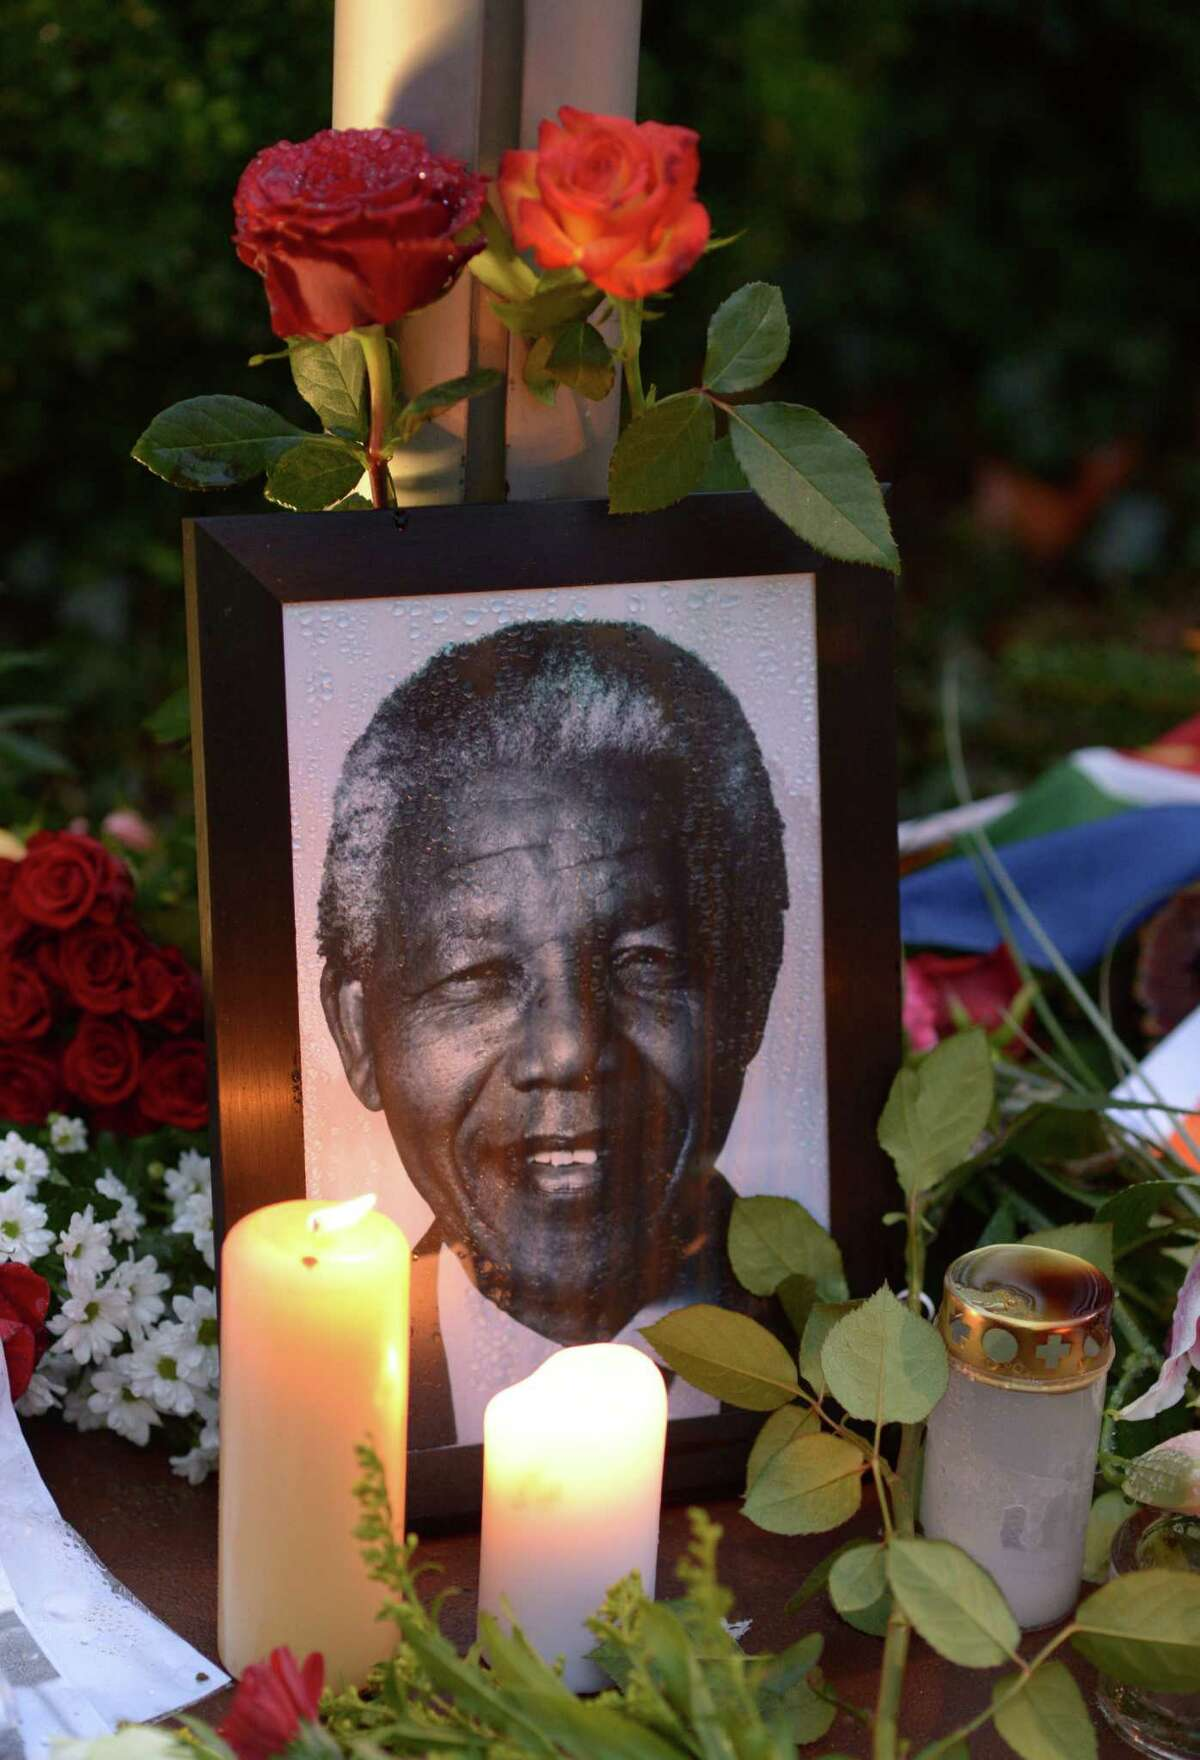 A photo of former South African President Nelson Mandela is displayed in front of his nation's embassy in Germany.